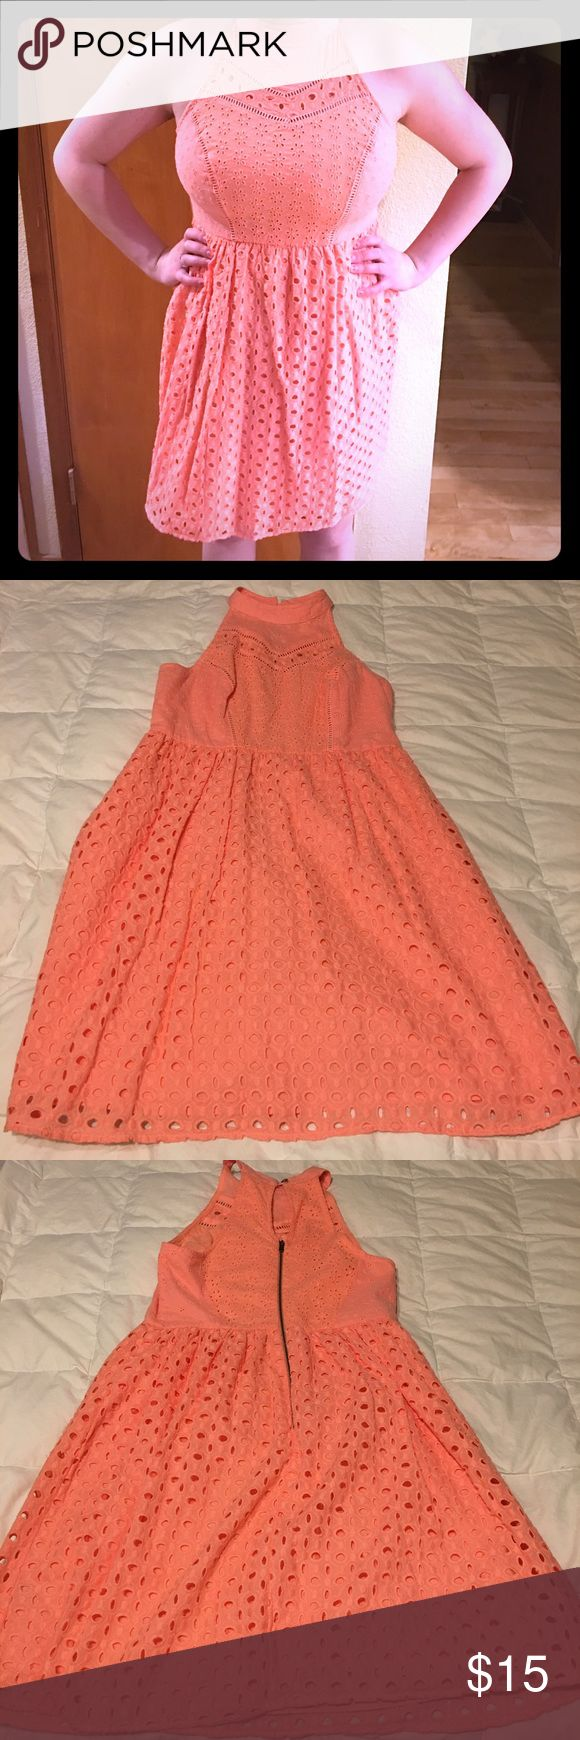 Coral Sundress Never worn coral sundress. Super cute back! Xhilaration Dresses Mini